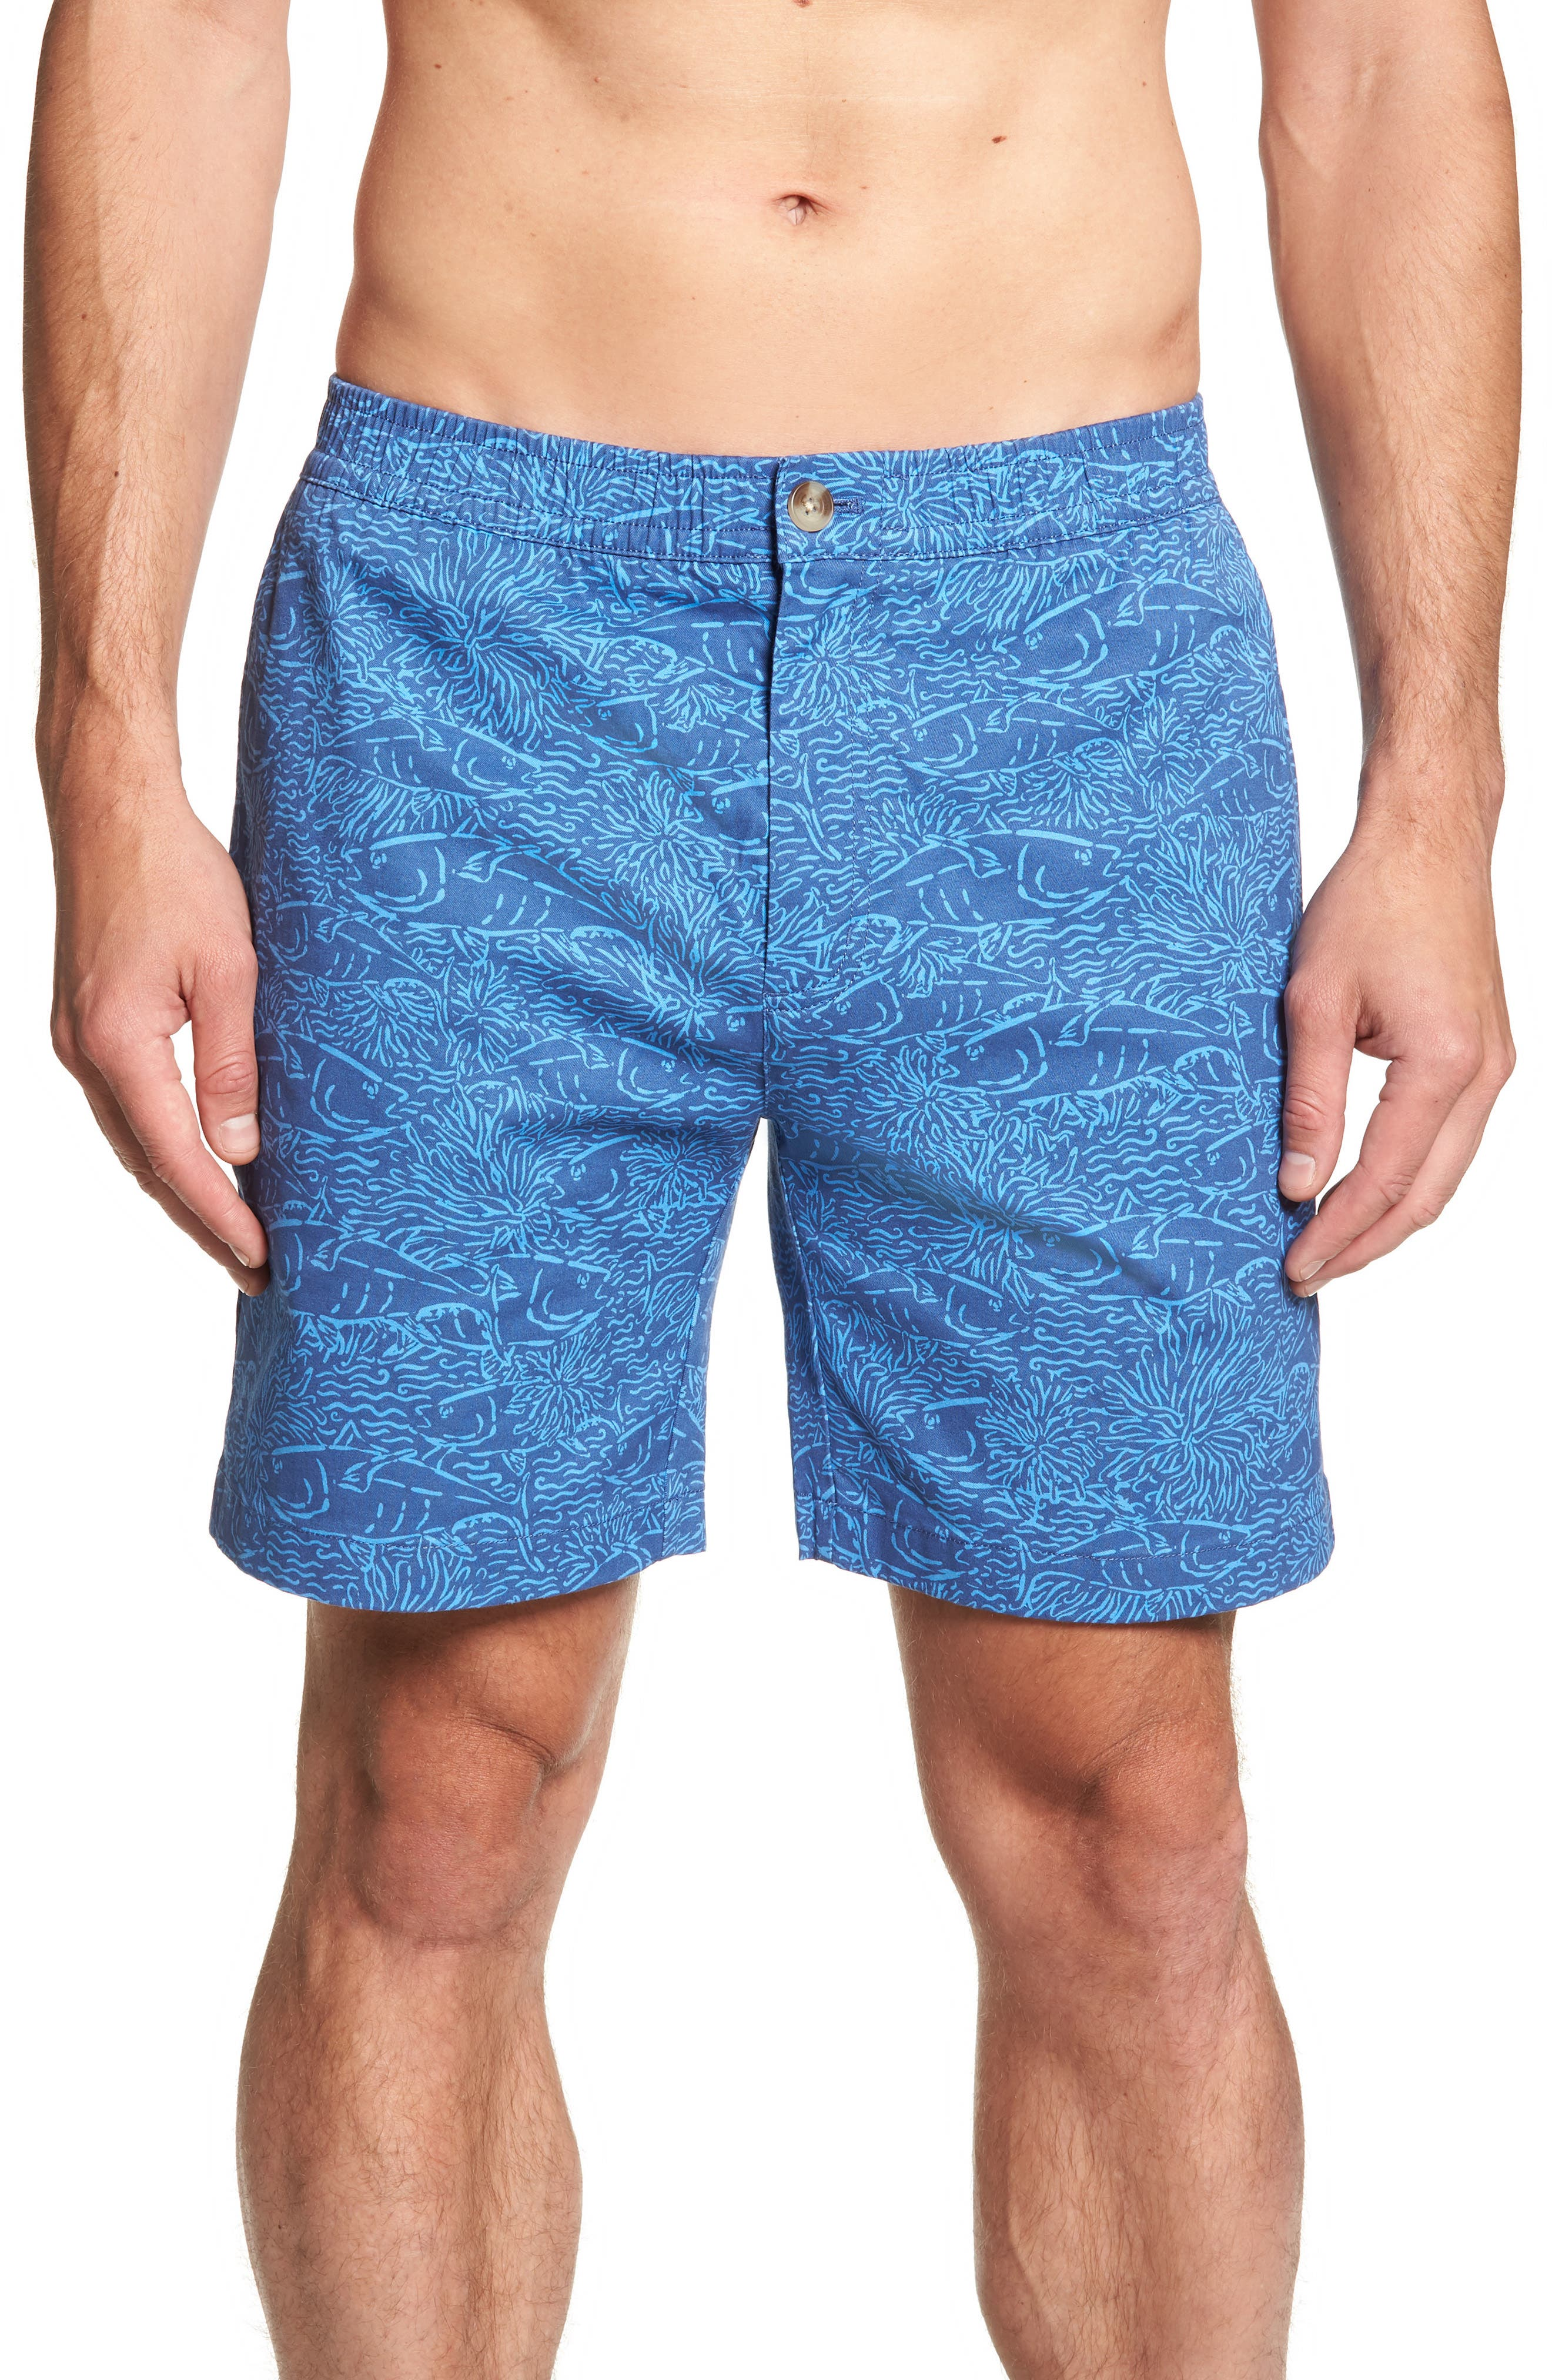 Jetty Print Stretch Cotton Shorts,                             Main thumbnail 1, color,                             Moonshine